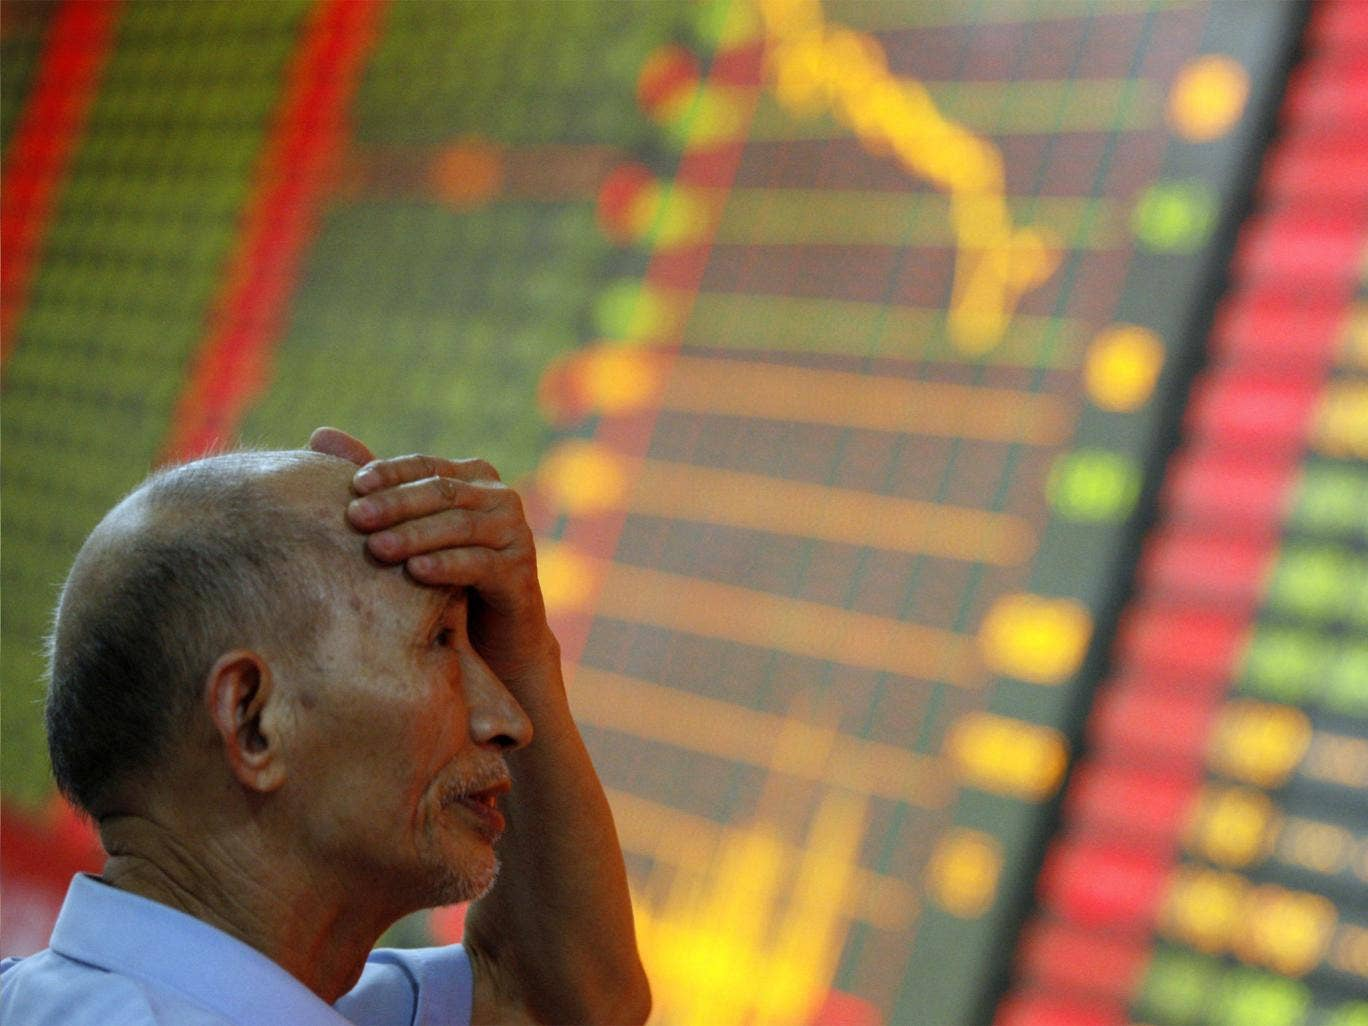 An investor gestures at the volatility of Chinese stock markets